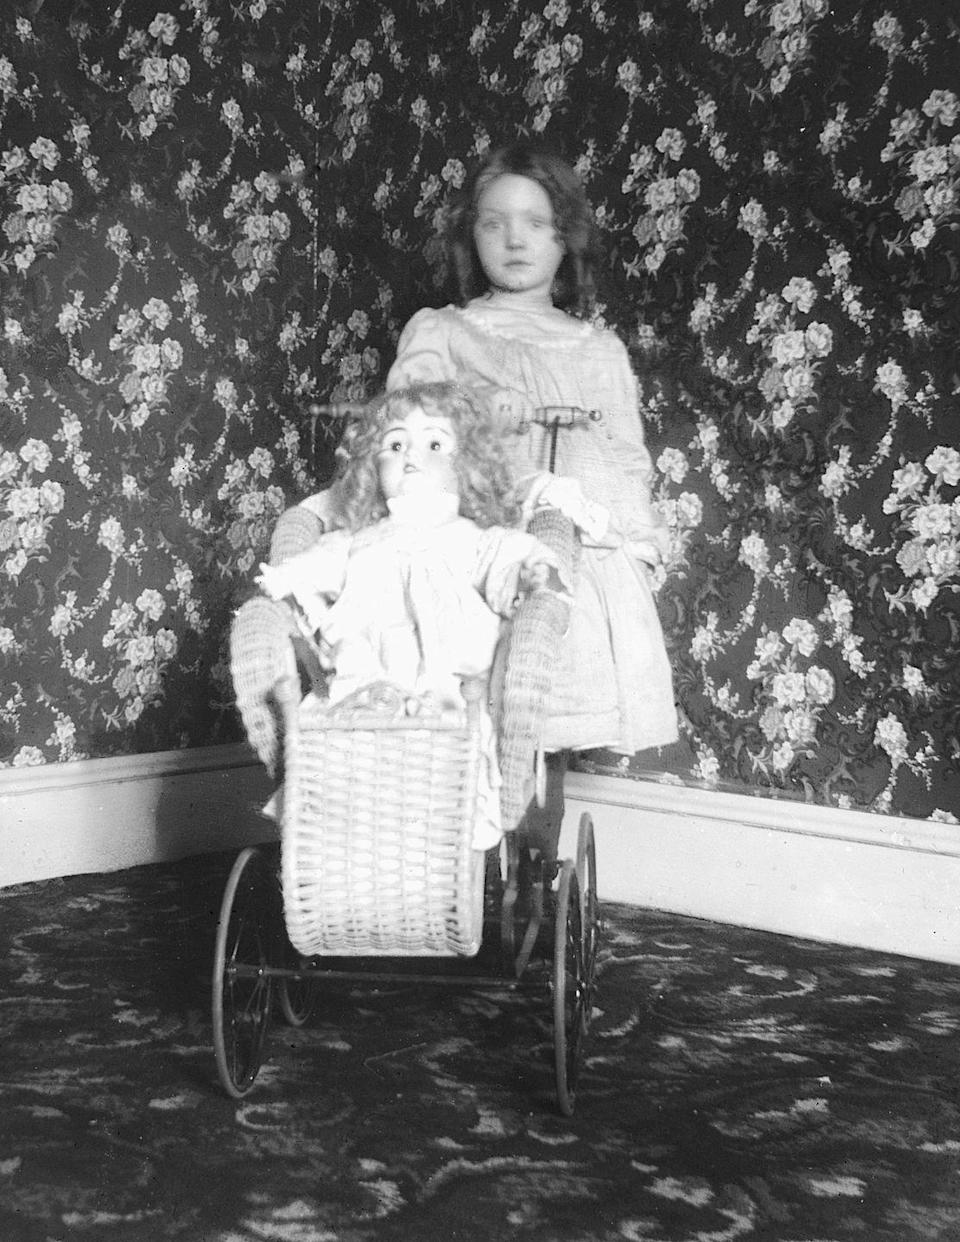 """<p>Here, a child poses with her rag doll. According to<em> Healthline</em>, pediophobia is the """"<a href=""""https://www.healthline.com/health/mental-health/pediophobia"""" rel=""""nofollow noopener"""" target=""""_blank"""" data-ylk=""""slk:intense and irrational fear of dolls"""" class=""""link rapid-noclick-resp"""">intense and irrational fear of dolls</a>,"""" and any people are said to develop the fear based on traumatic events that loosely relate to dolls. Many horror films, including <em>Child's Play</em> and <em>Annabelle, </em> play off that very phobia.</p>"""